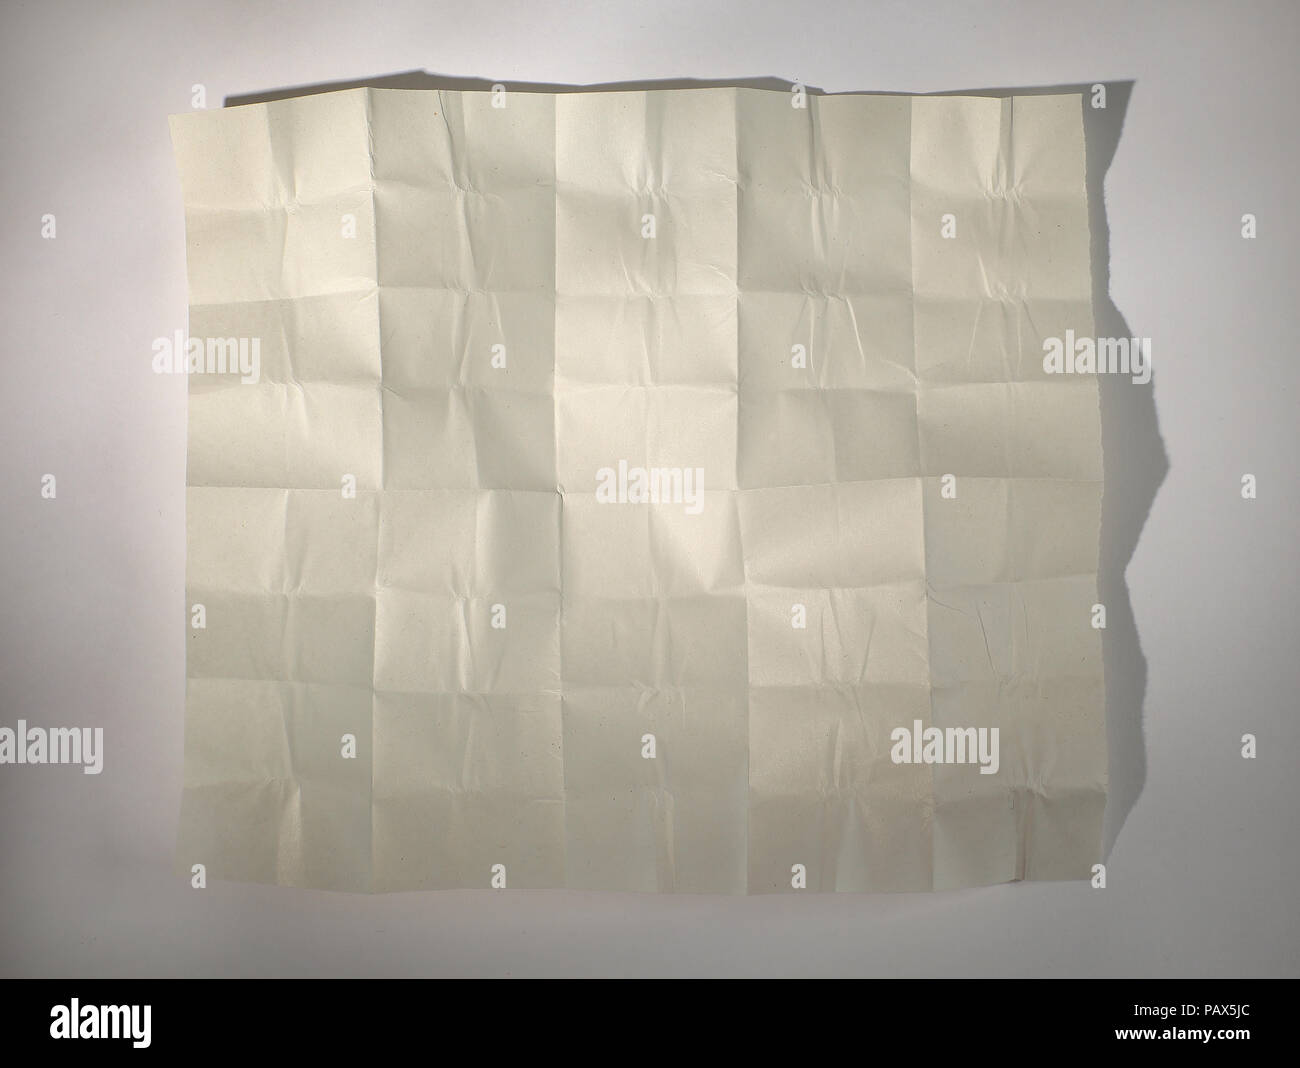 crumpled sheet of wrapping paper for the label - Stock Image